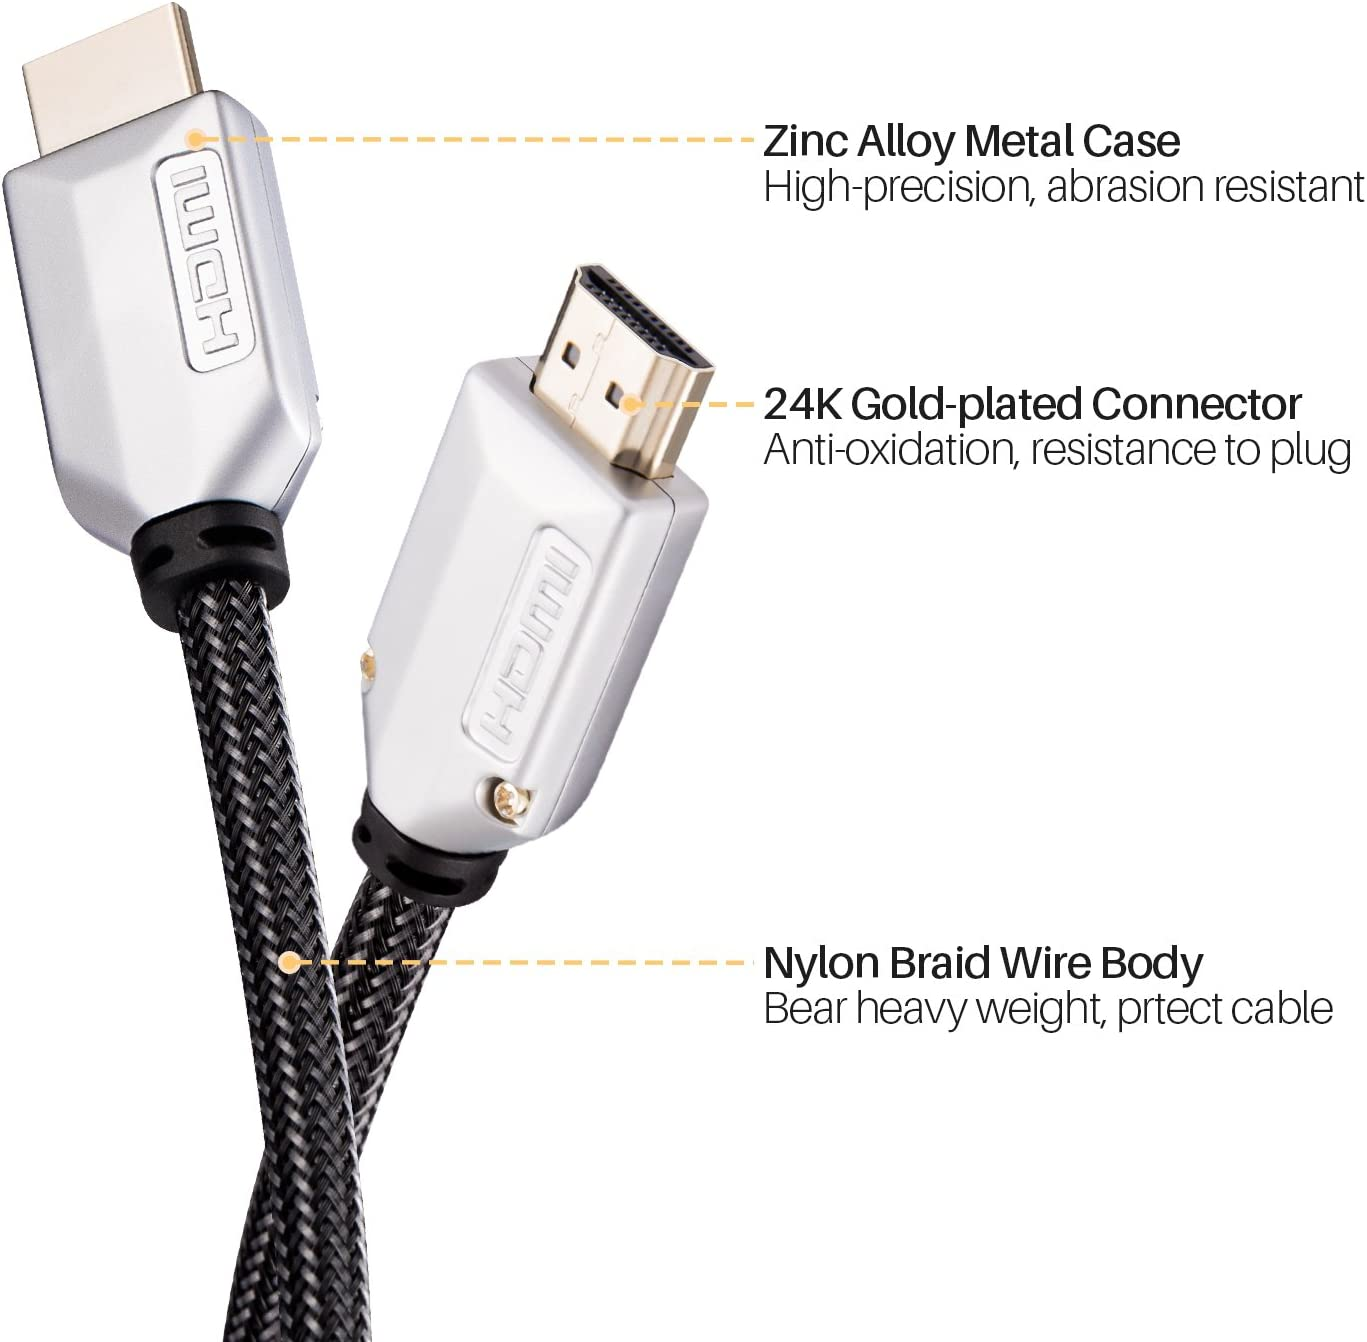 Ready Video 4K 2160p HD 1080p 3D HDMI Cable High Speed 18Gbps 4K @ 60Hz 6ft TV - HDMI 2.0 Ethernet//Audio Return Playstation PS4 PC 30AWG Braided Cord Gold Plated Connectors